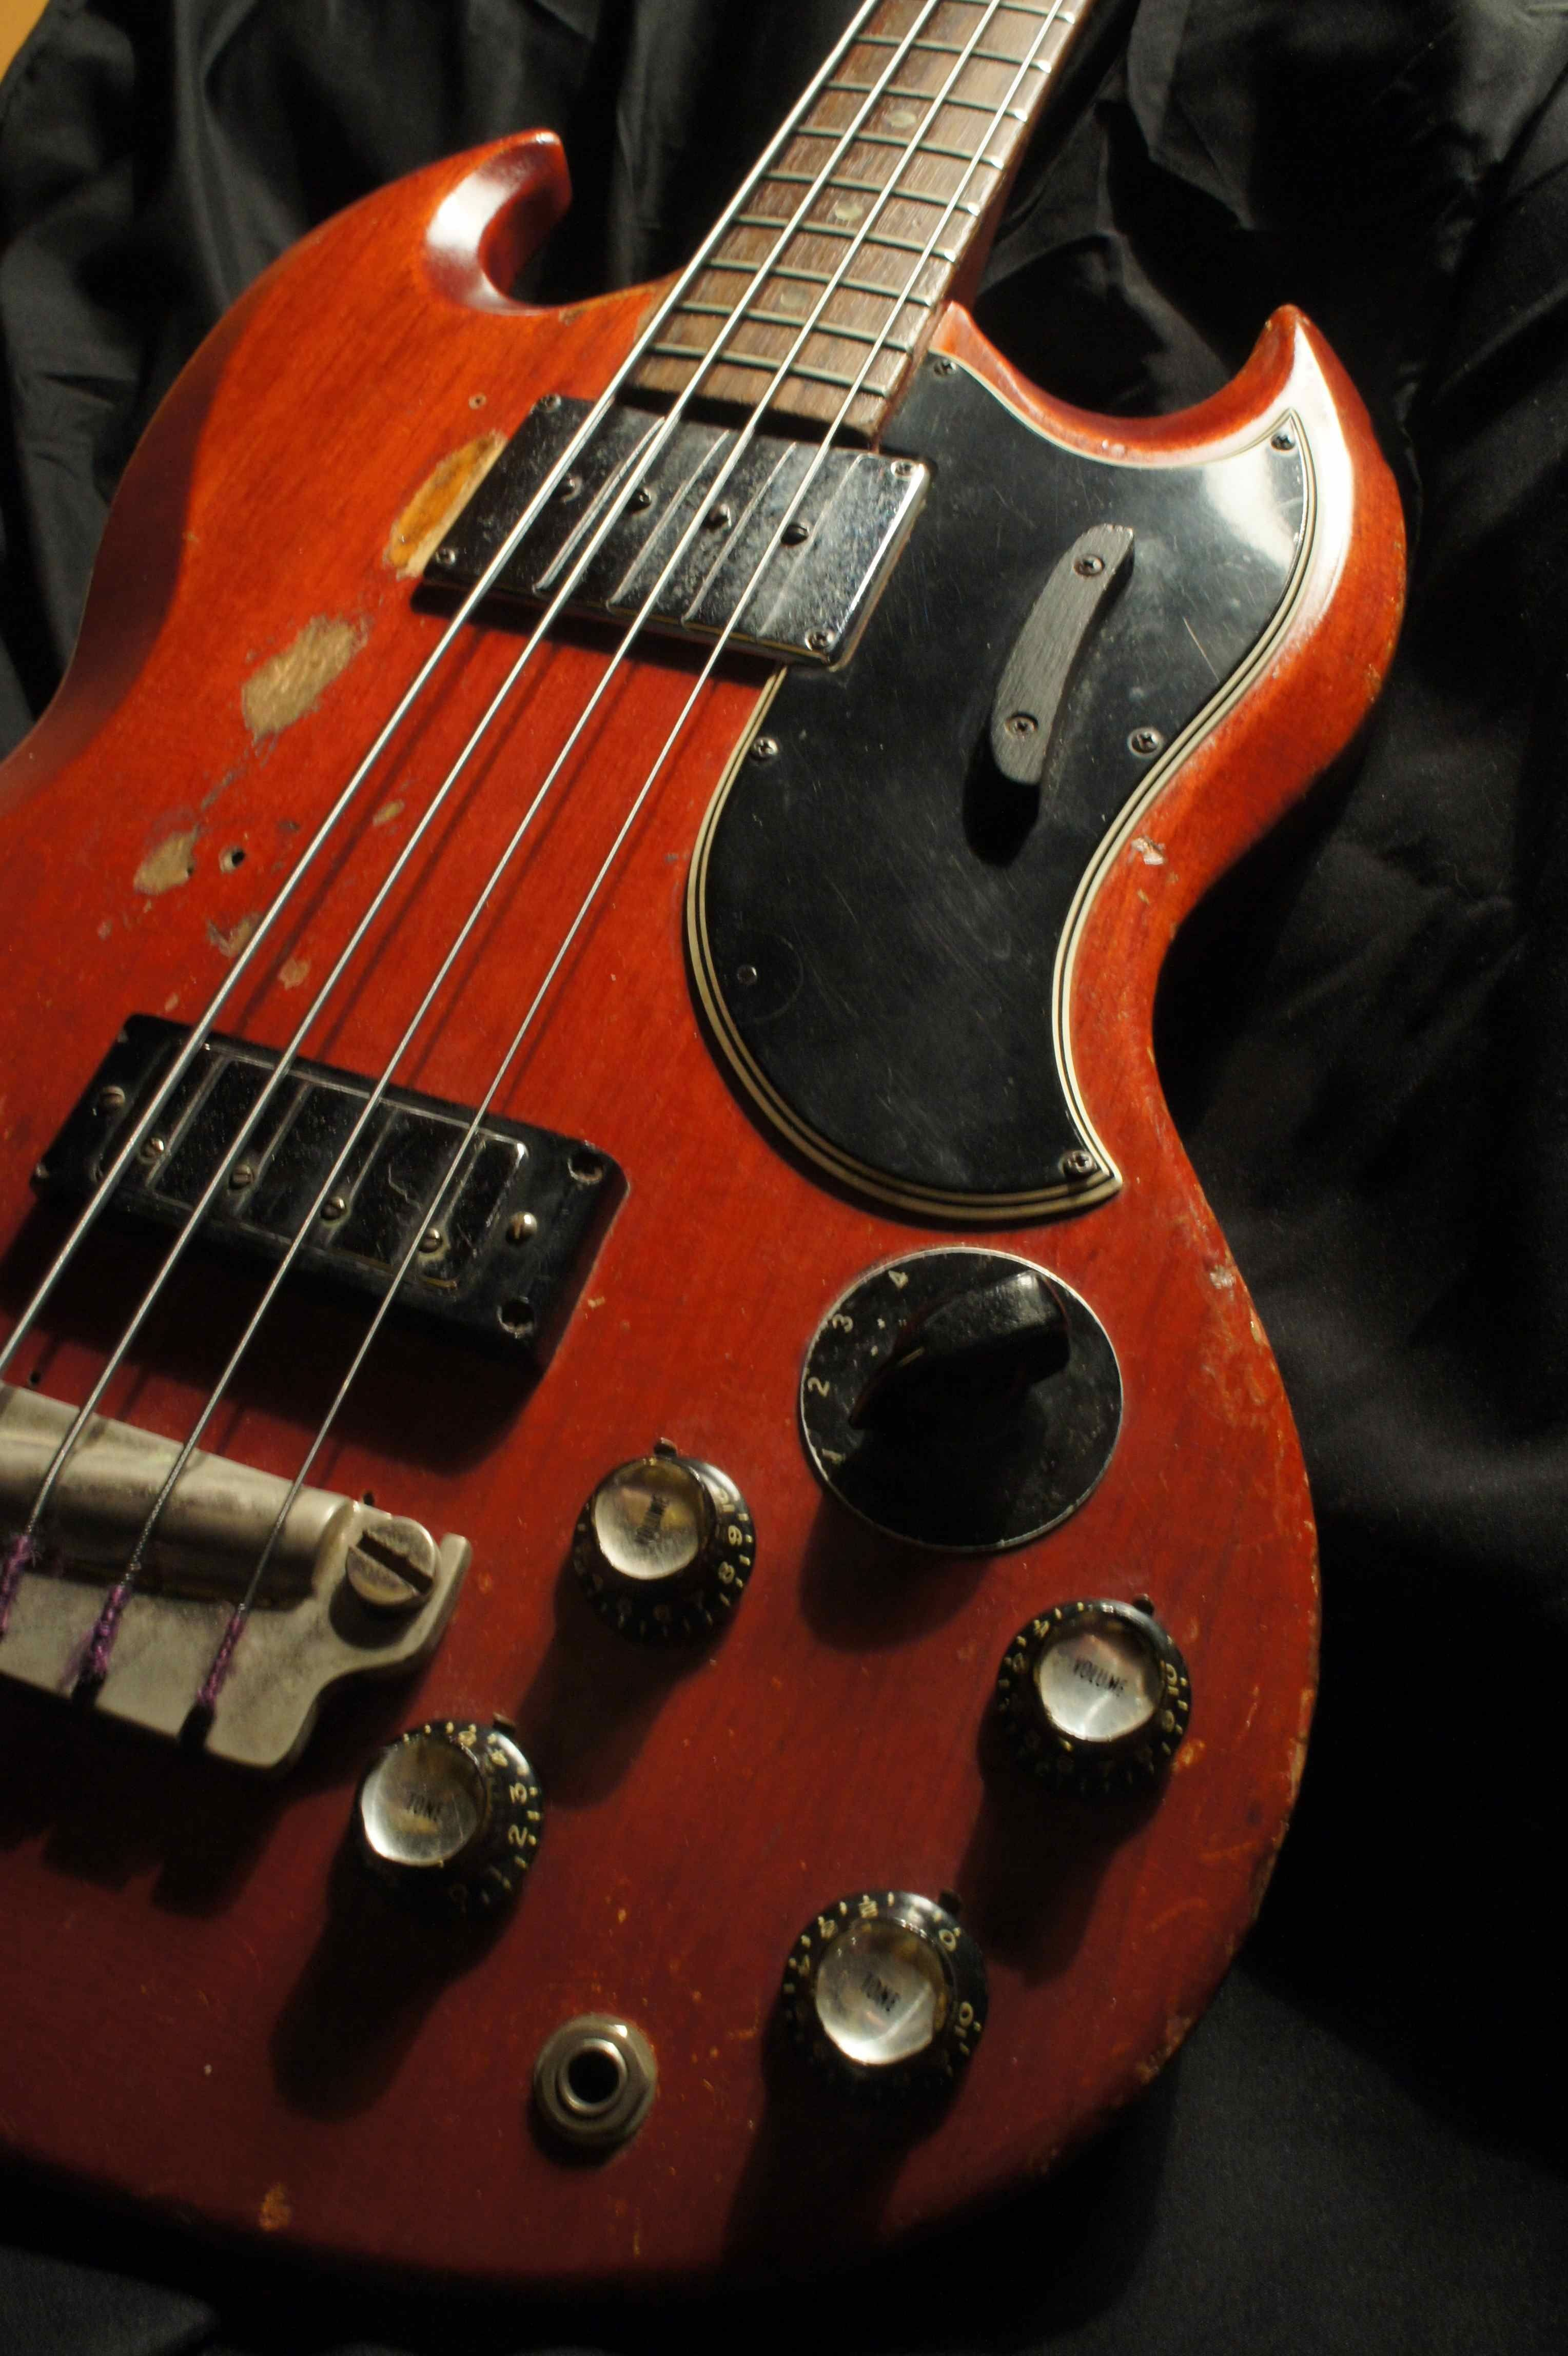 Gibson EB 3 Bass 1966 of the late Jack Bruce ed extensively while in Cream